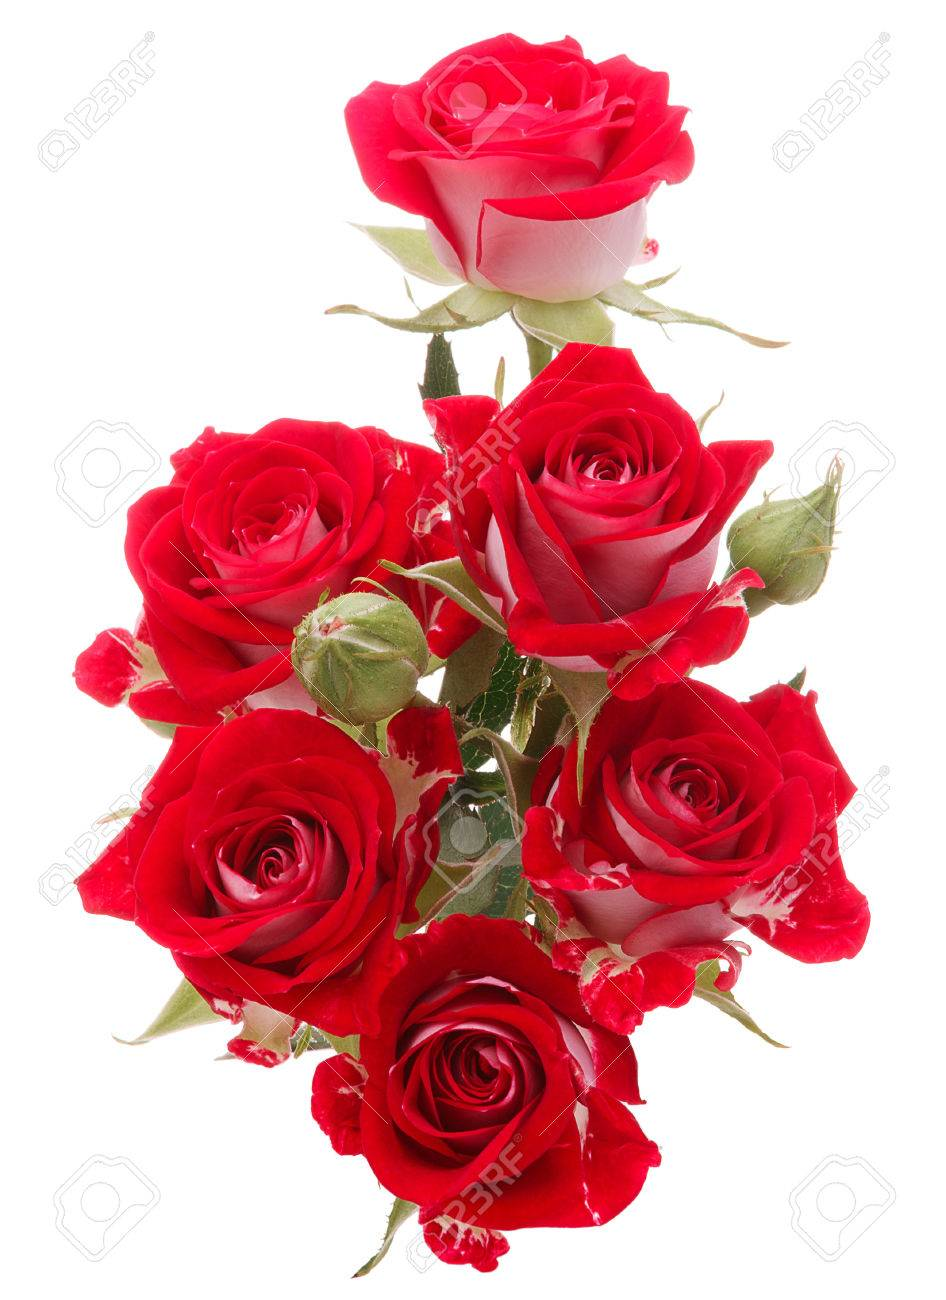 Red Rose Flower Bouquet Isolated On White Background Cutout Stock